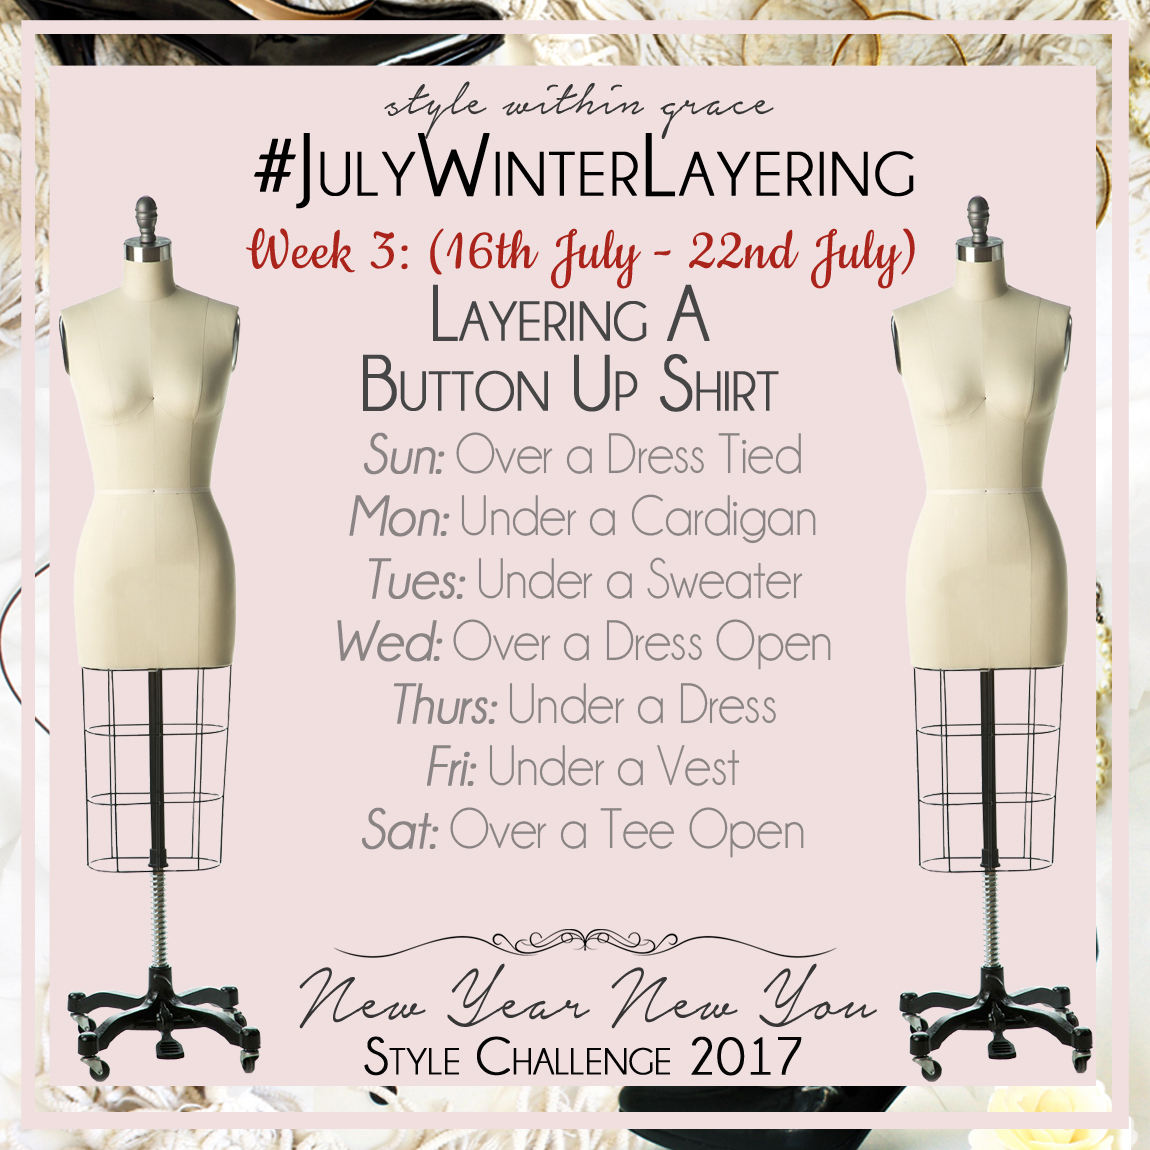 July Winter Layering Style Prompts Week 3